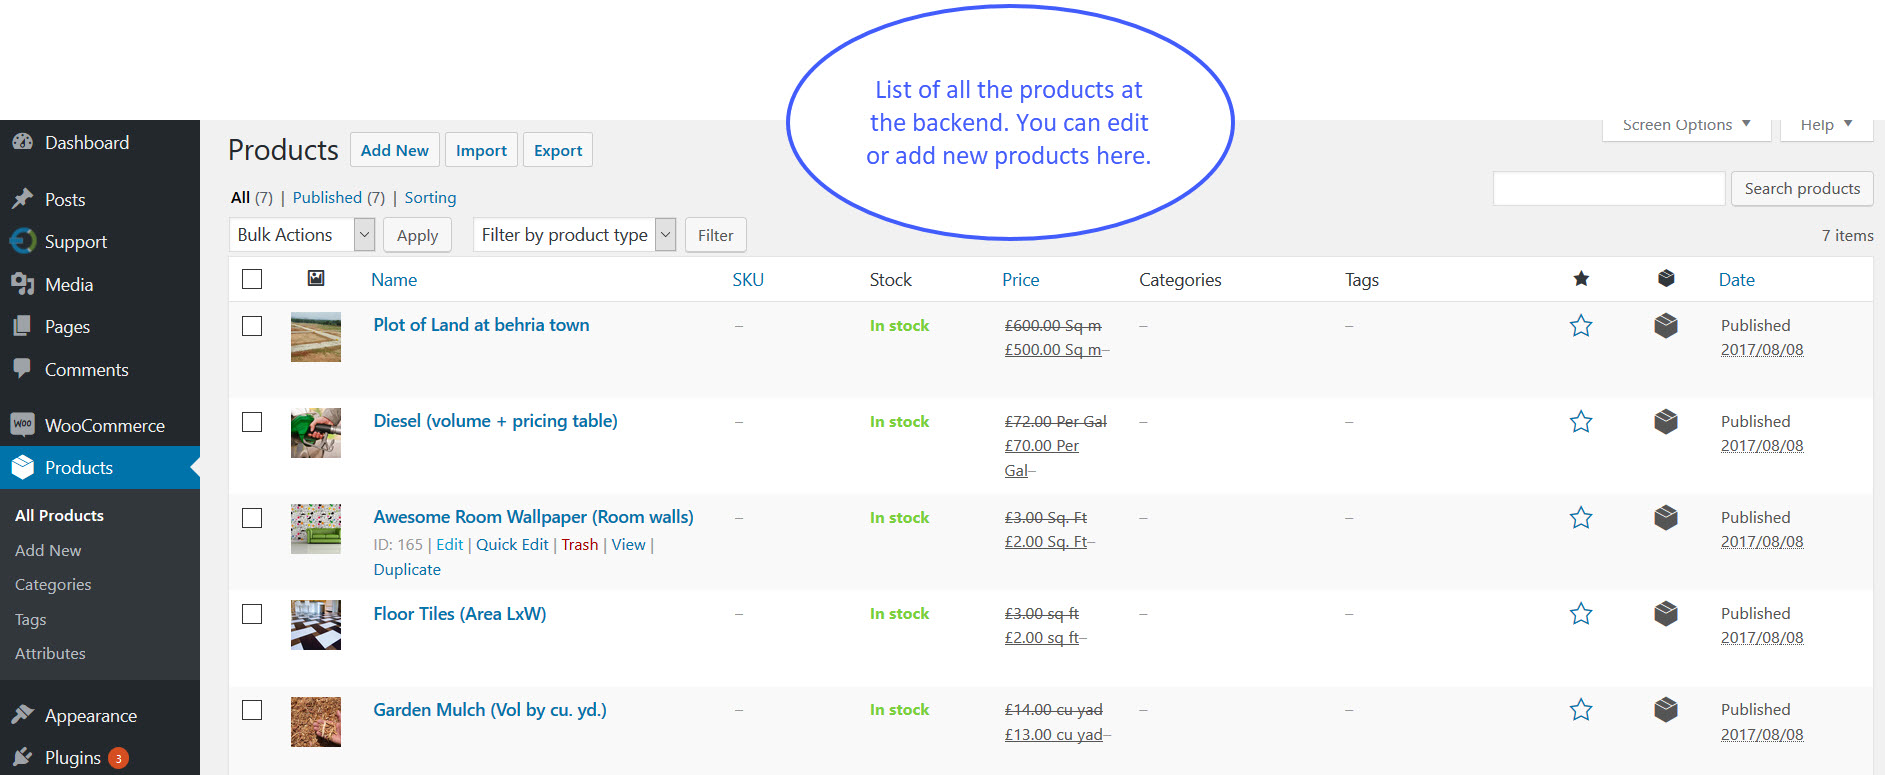 ... Pricing Calculator Extension ...